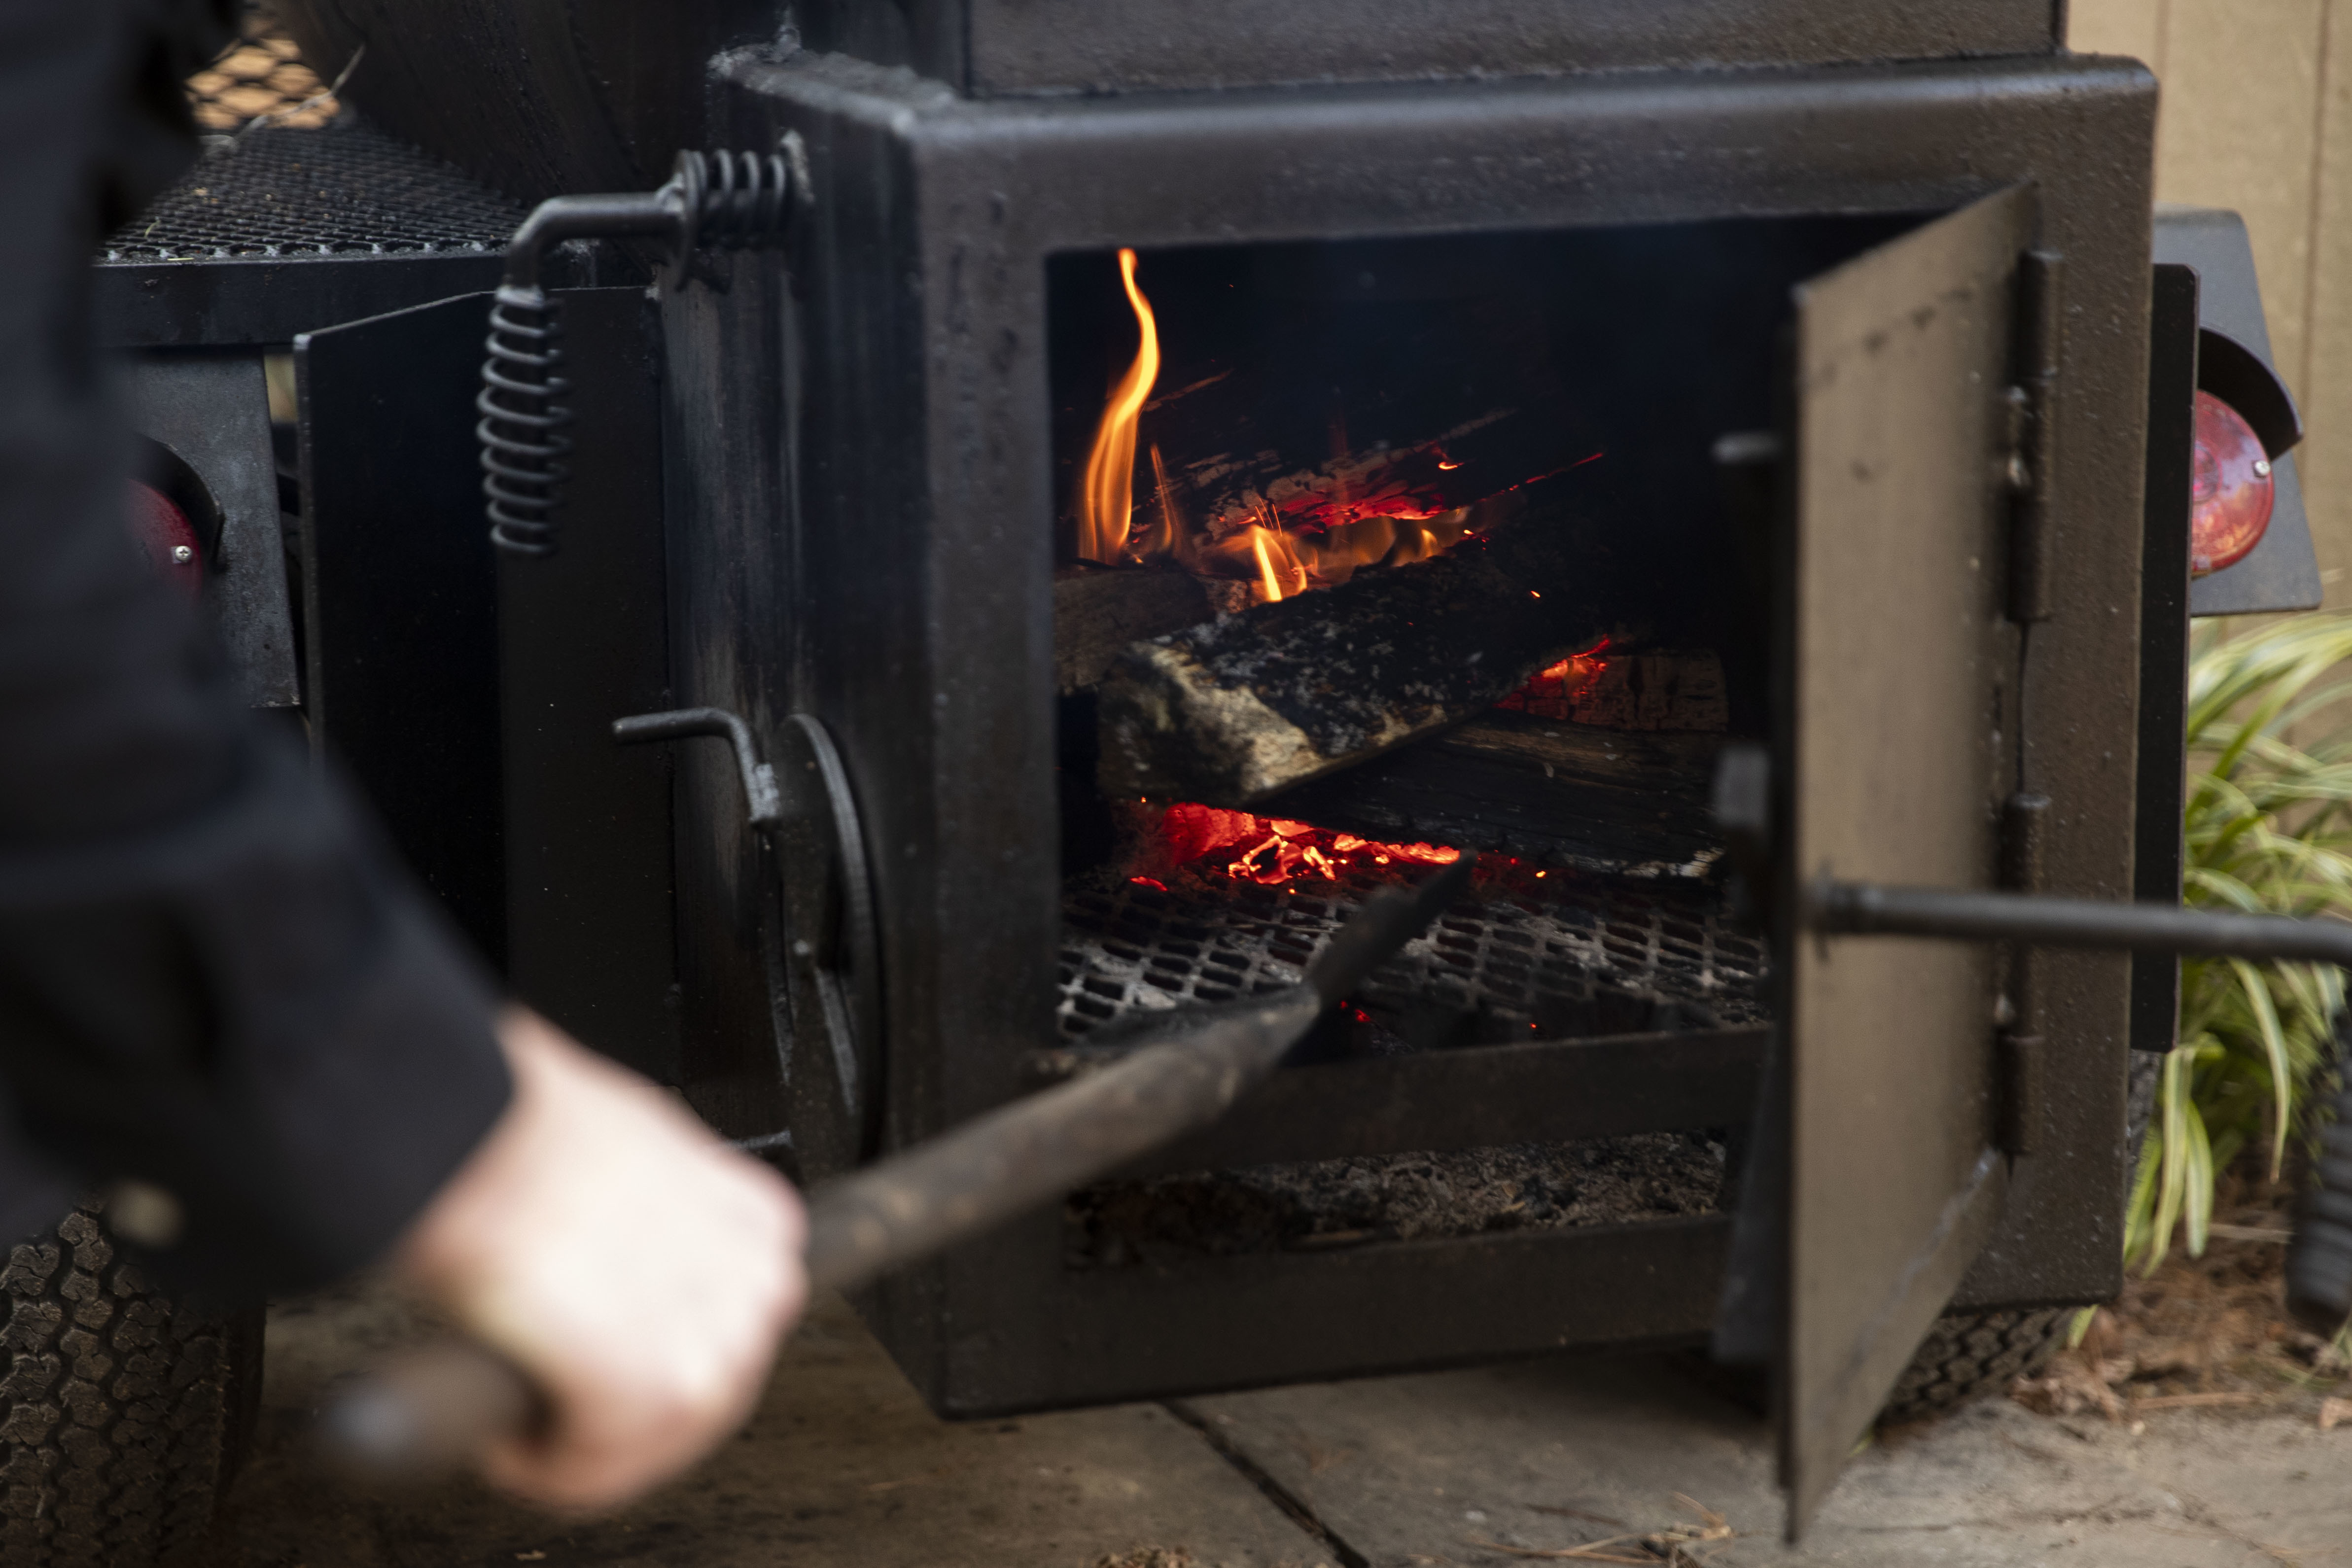 Scott Hanson stokes the fire in his smoker in his backyard in the Chestnut Hill neighborhood of Philadelphia, Pa. on Sunday, March 14, 2021. Scott Hanson, a history and social justice professor, is launching a weekly pop-up collaboration with Cadence on March 21.